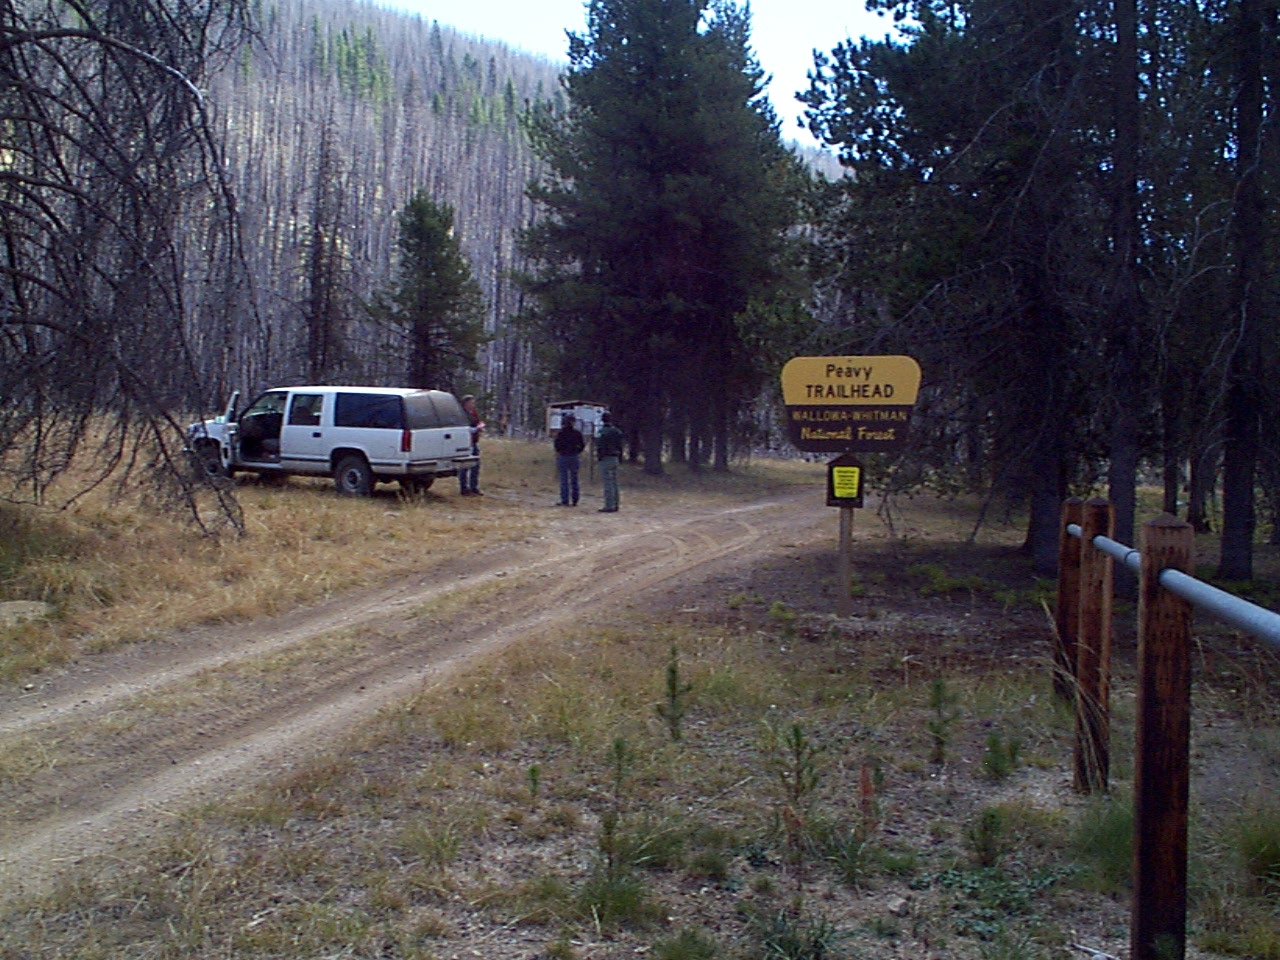 Hiker trailhead with pine trees and a truck parked